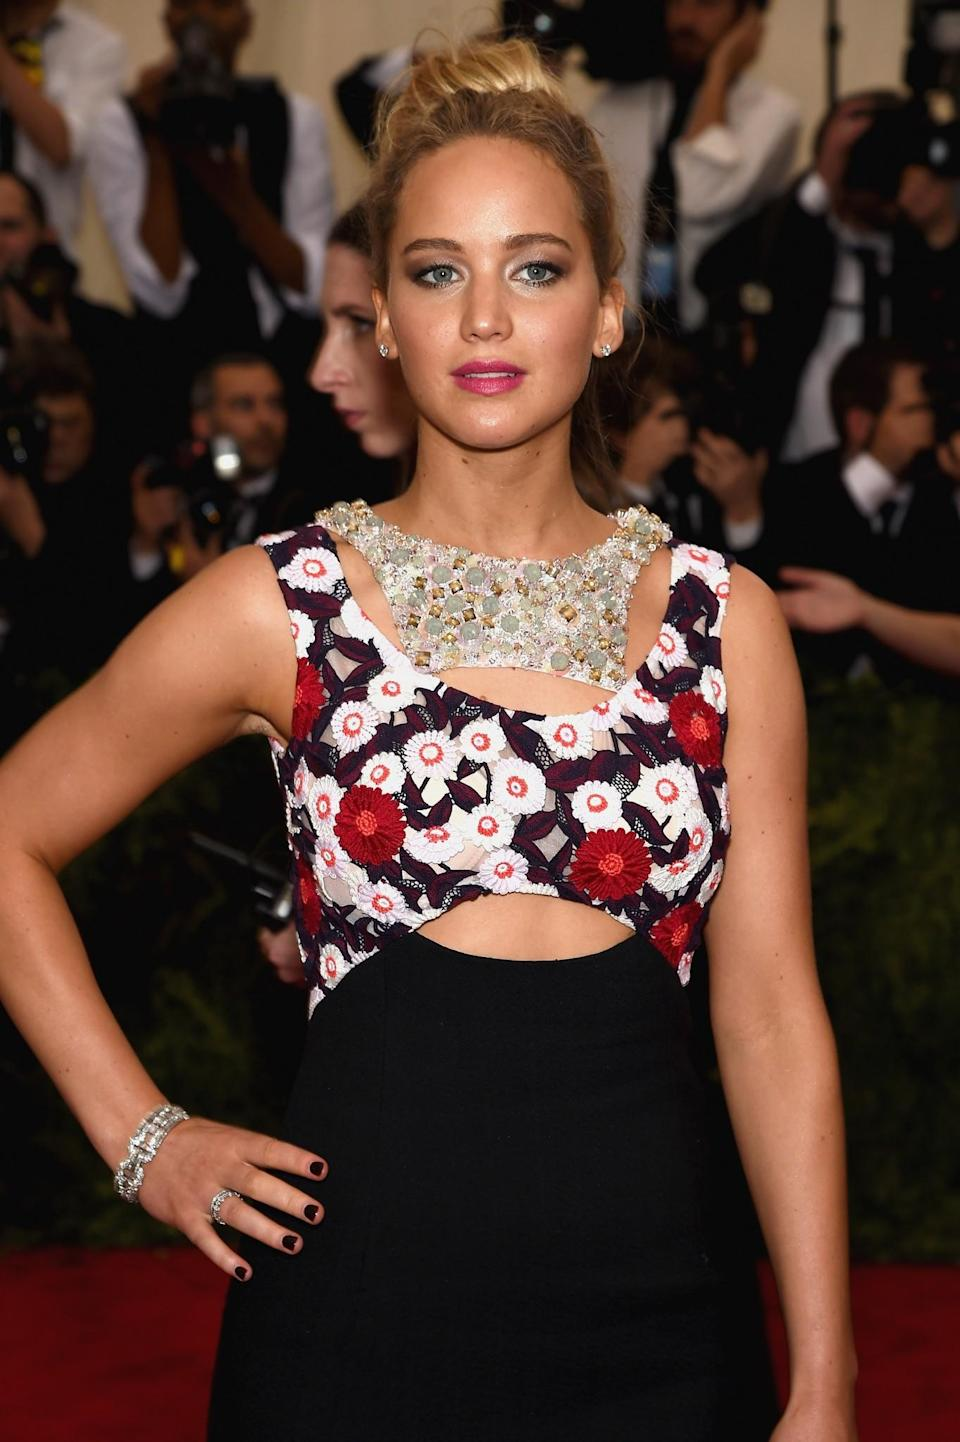 <p>At the Met Gala in 2015, Jennifer paired a high bun with her elaborate dress. Pink lipstick and a bronzed complexion completed the look. [Photo: Getty] </p>